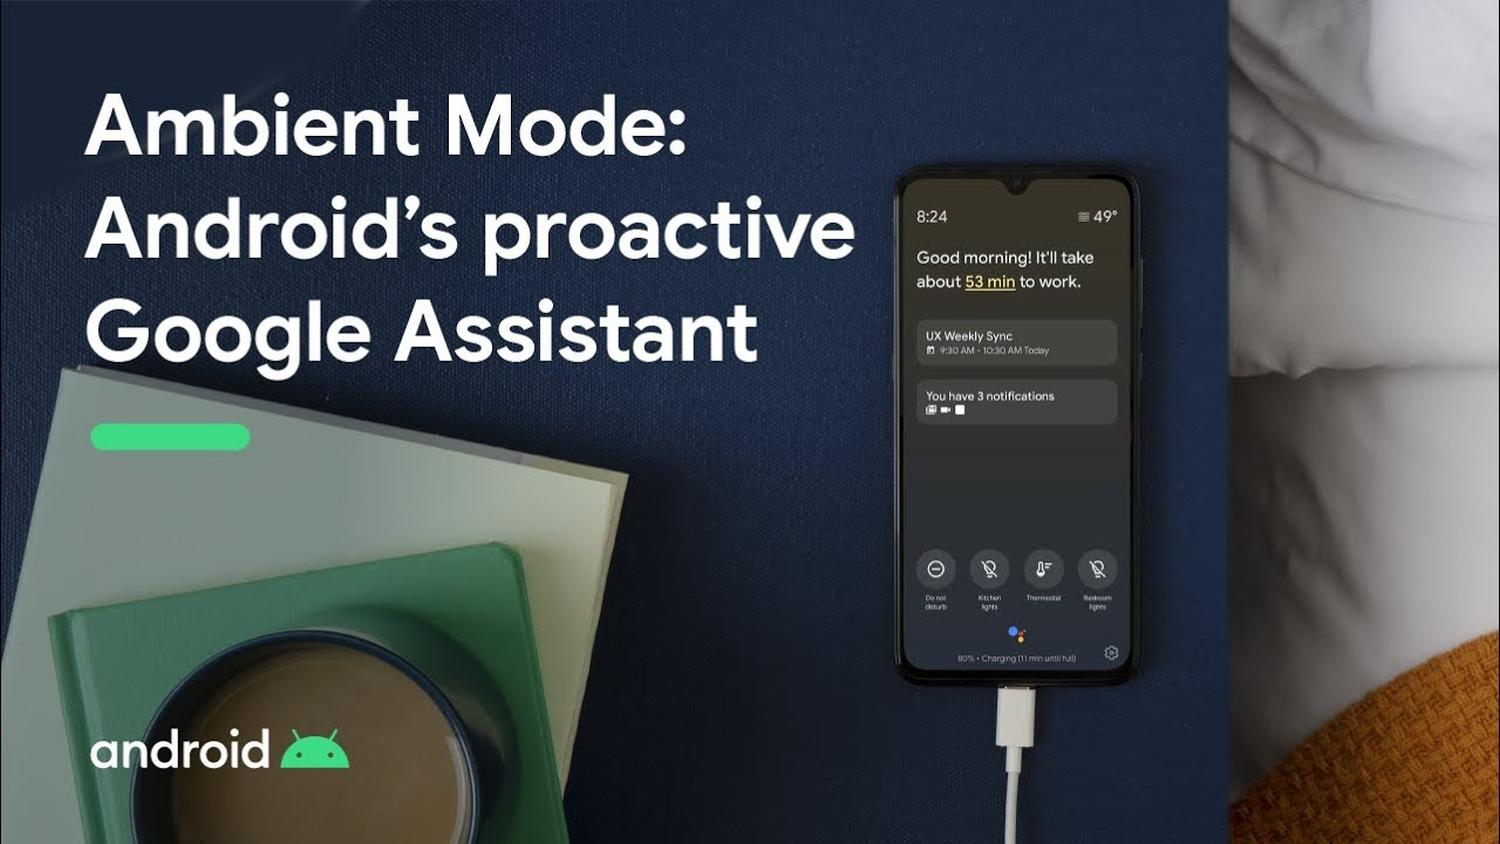 google assistant ambient mode